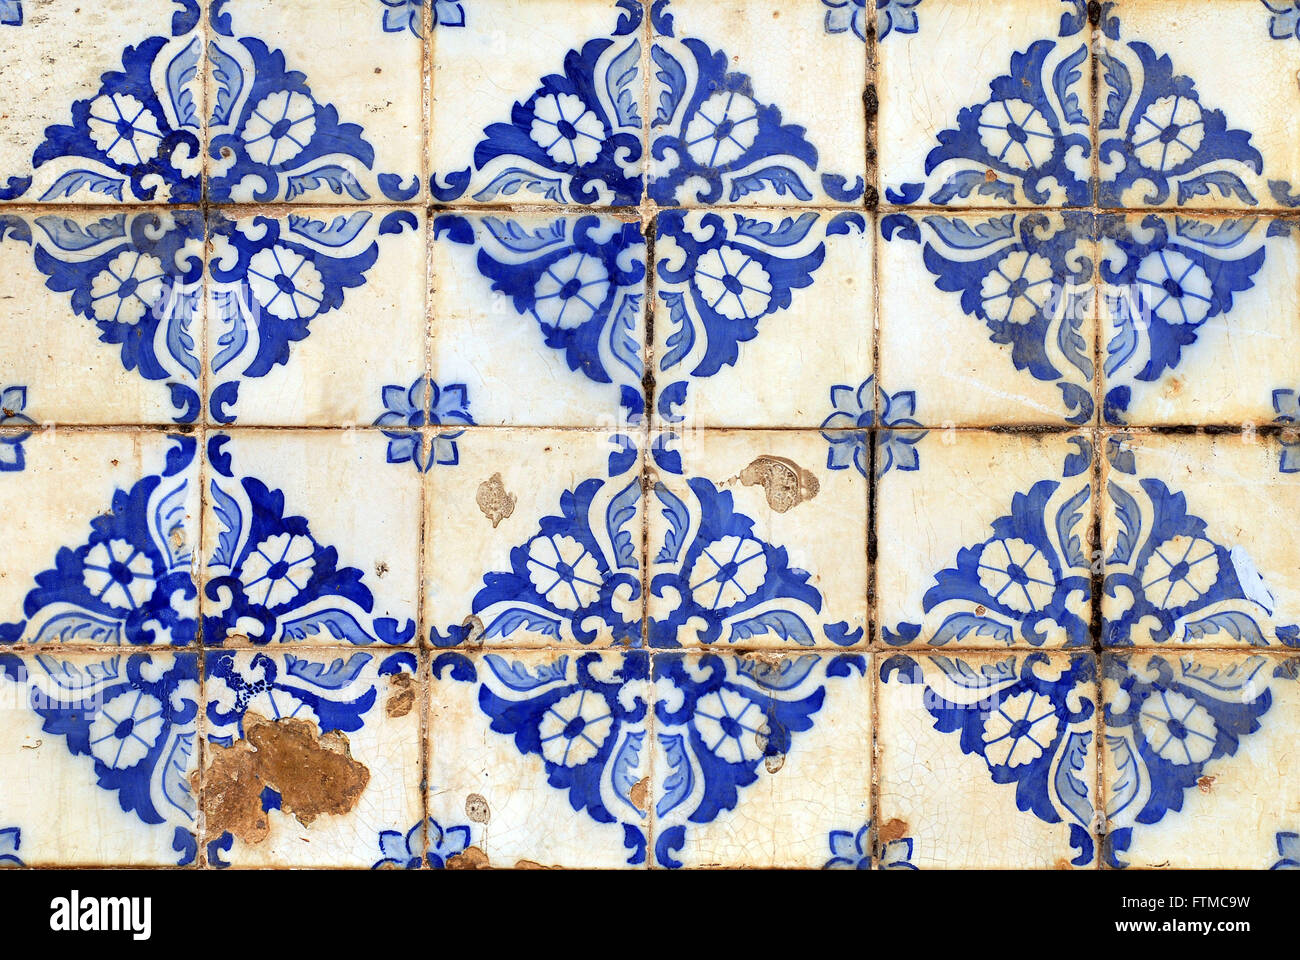 Detail of Portuguese tile townhouse in the historic center of Sao Luis - Stock Image